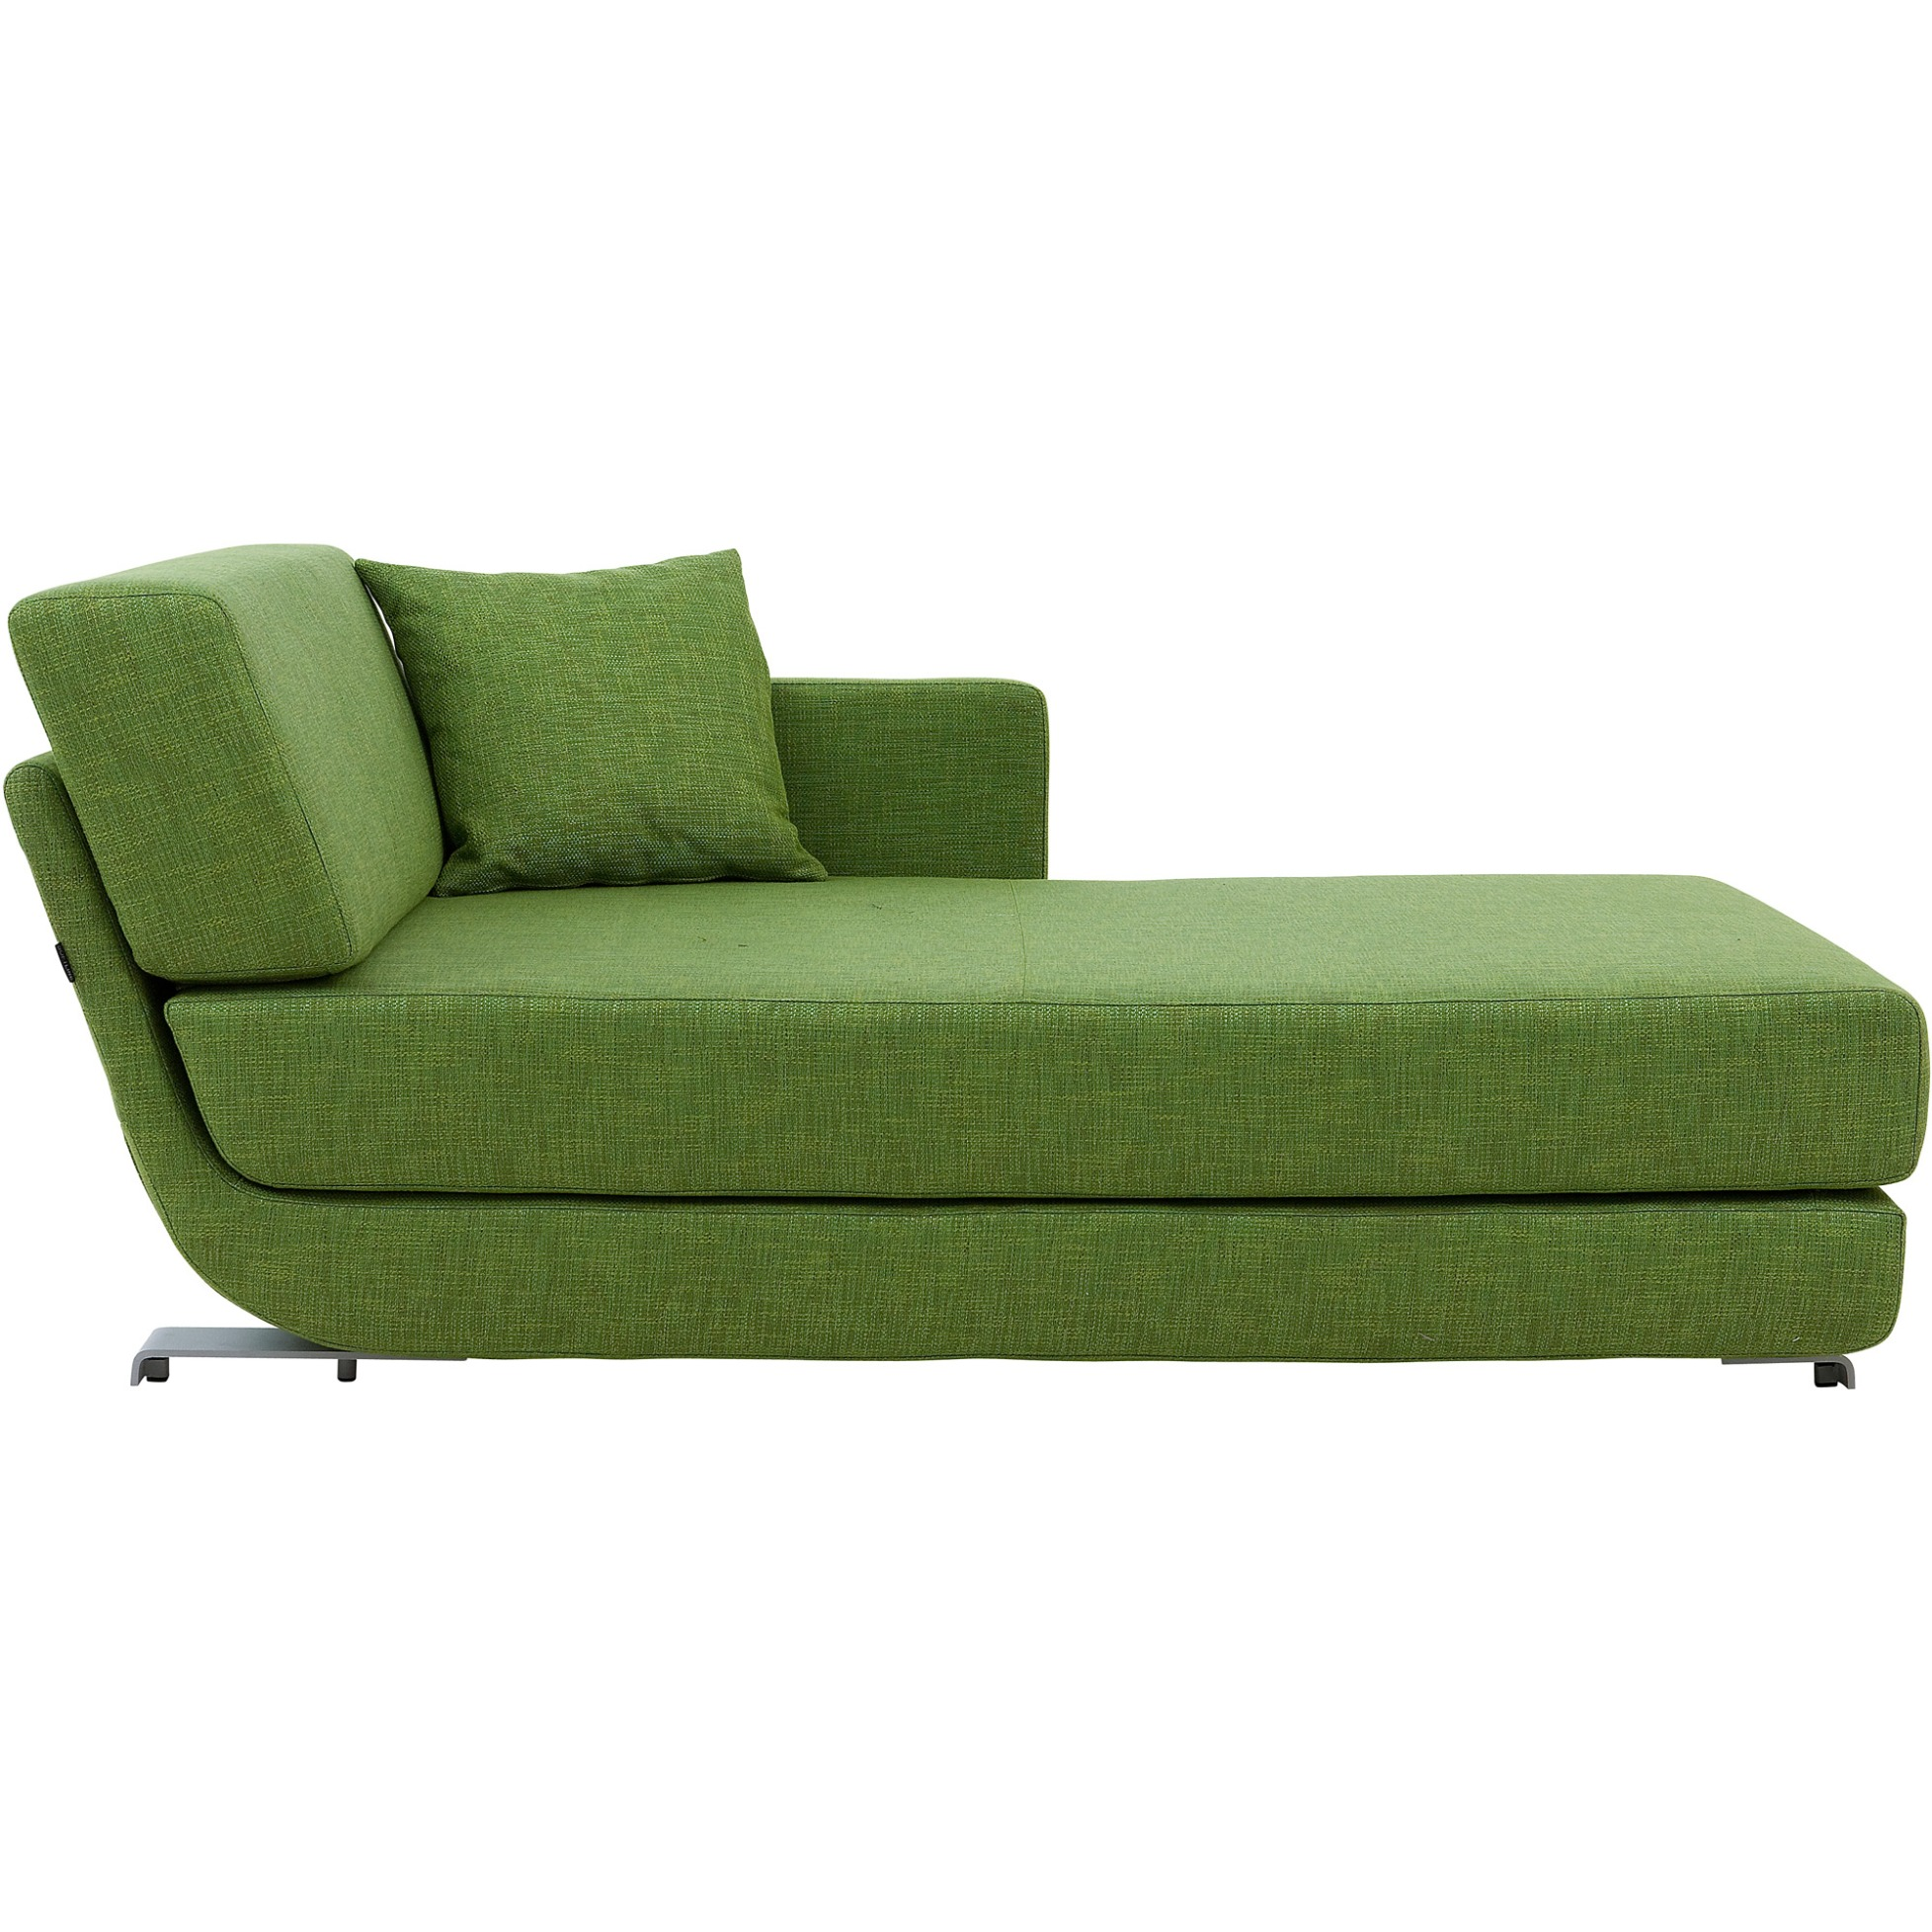 Chause Longue Chaiselongue Lounge Von Softline